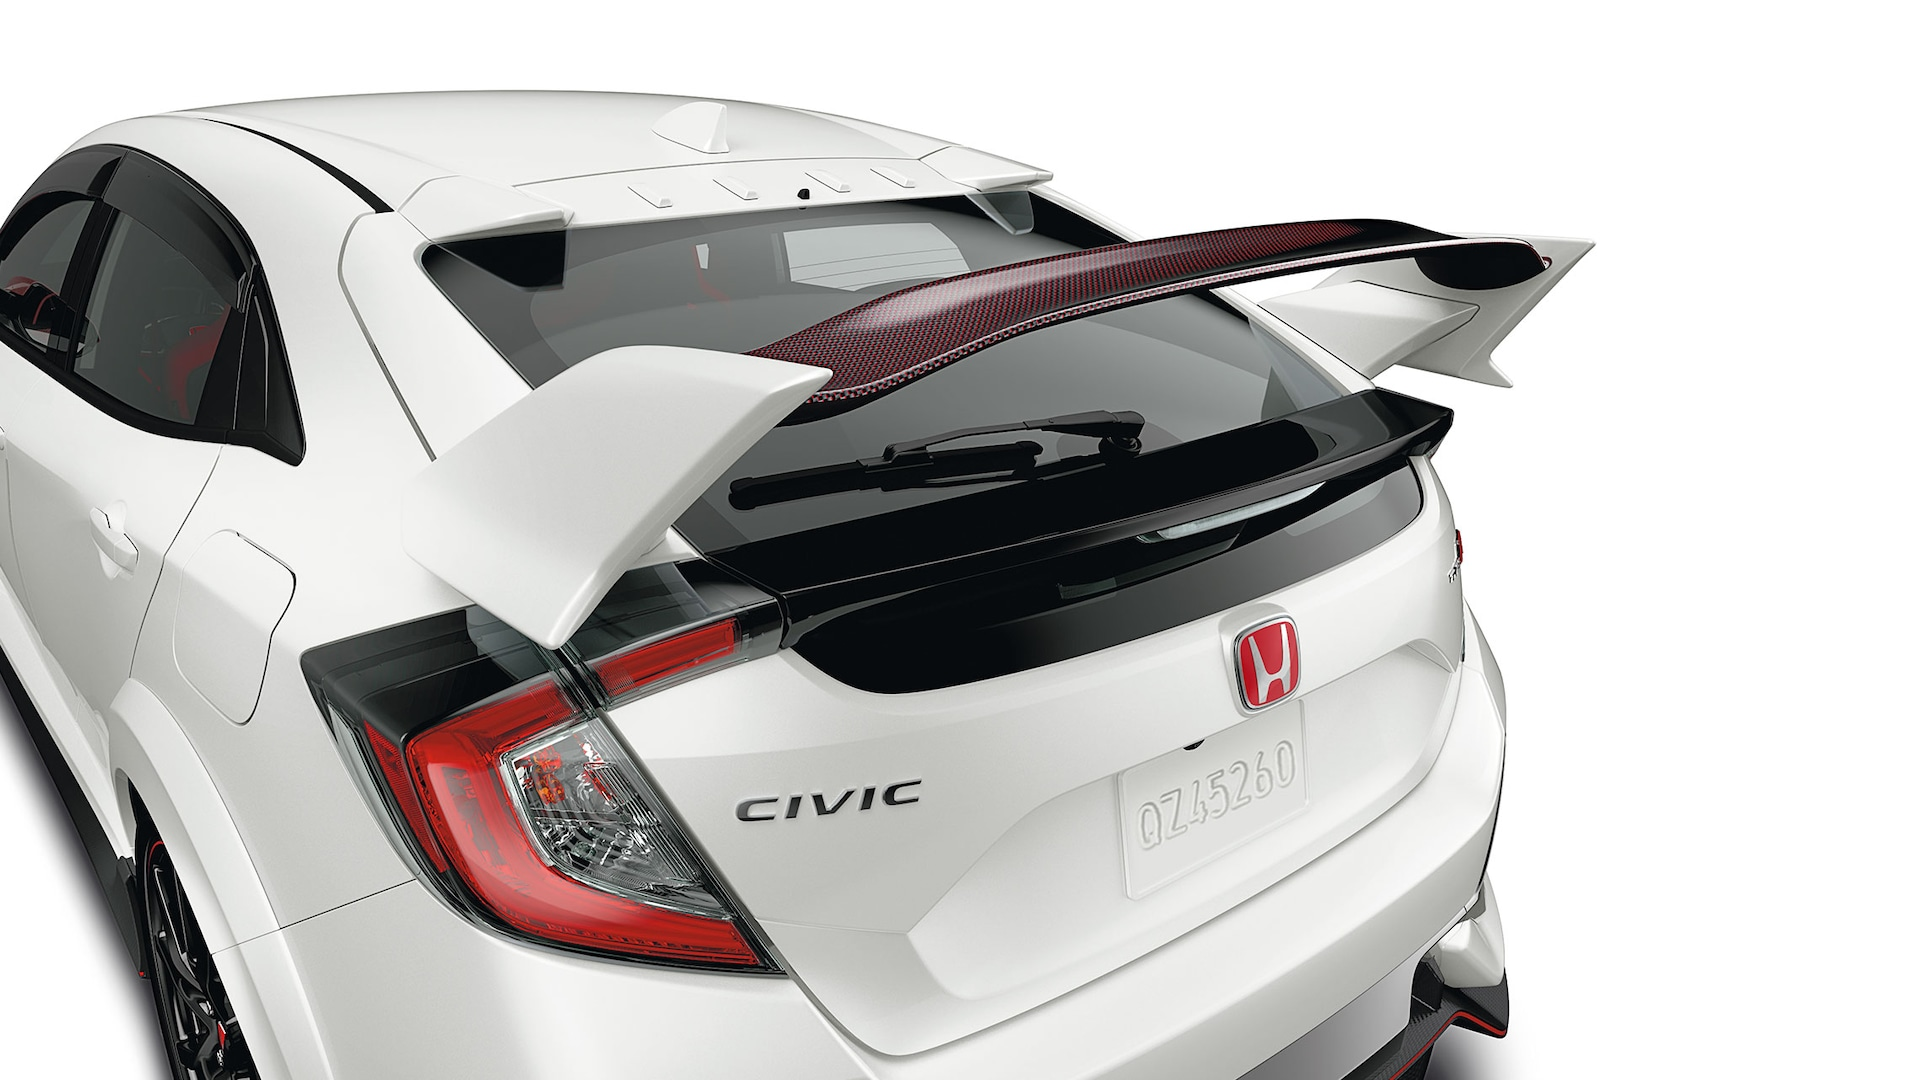 Detail view of Honda Genuine Accessory carbon fiber wing spoiler on the 2021 Honda Civic Type R.